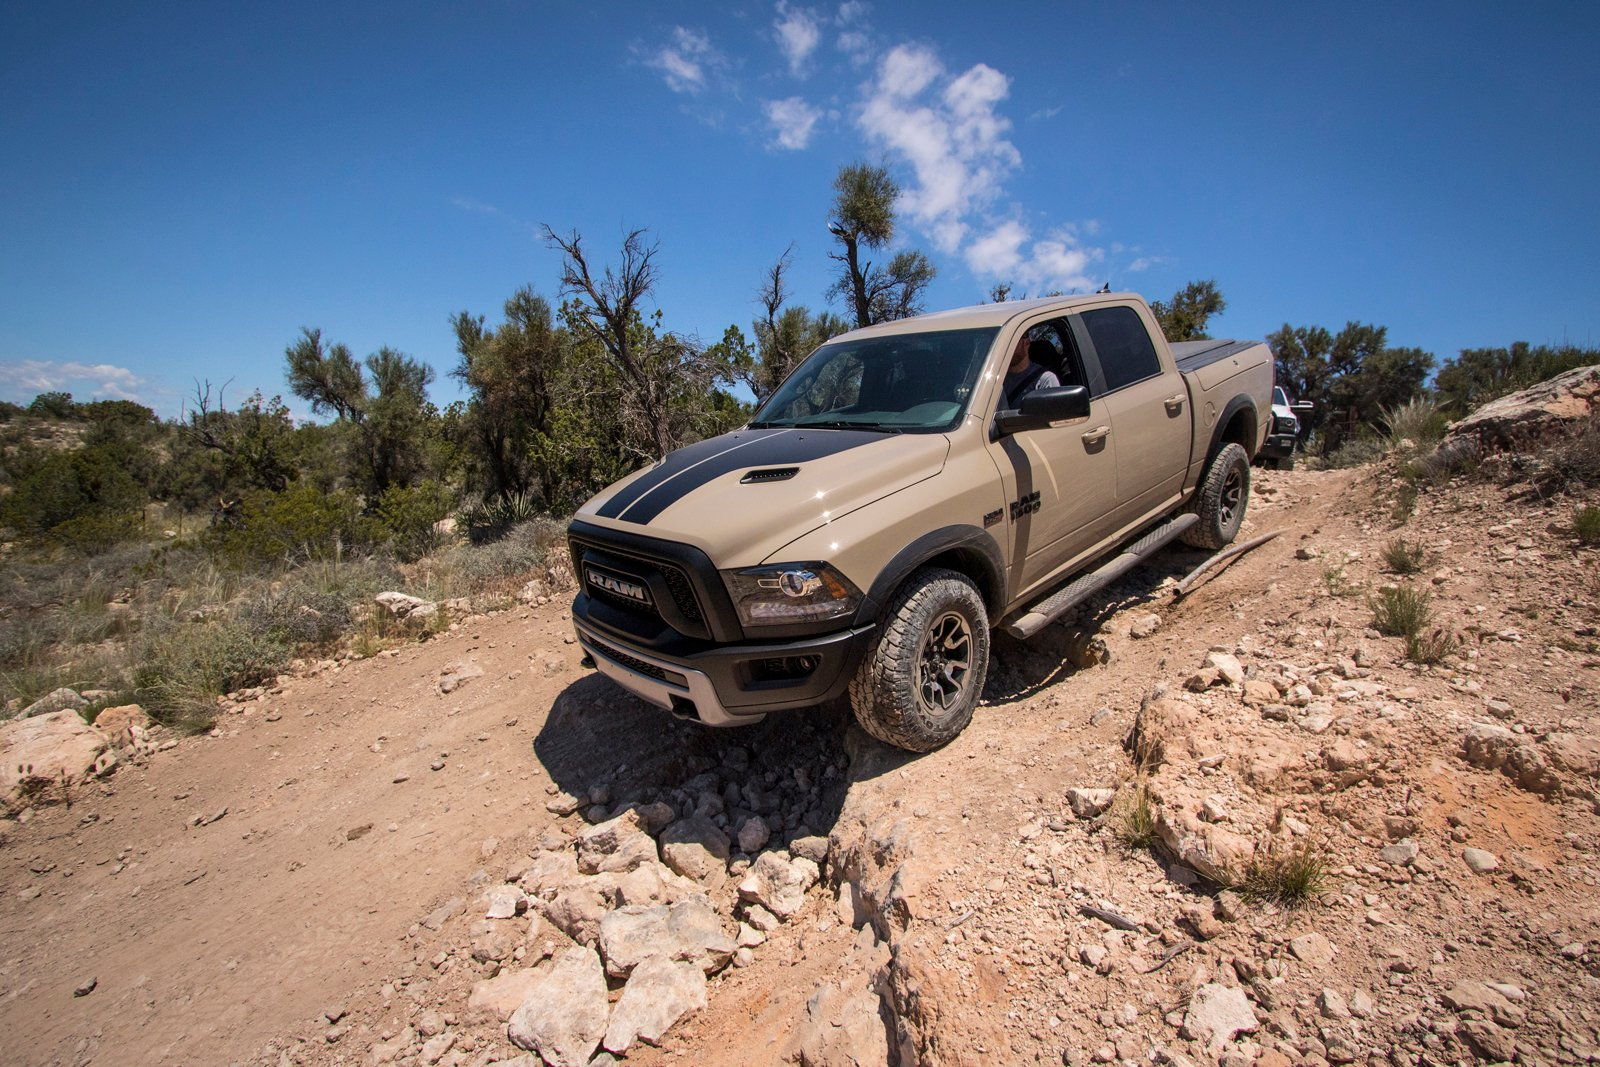 Used Ram Power Wagon >> Can a Ram Rebel Keep up with a Power Wagon in the Arizona Desert? » AutoGuide.com News